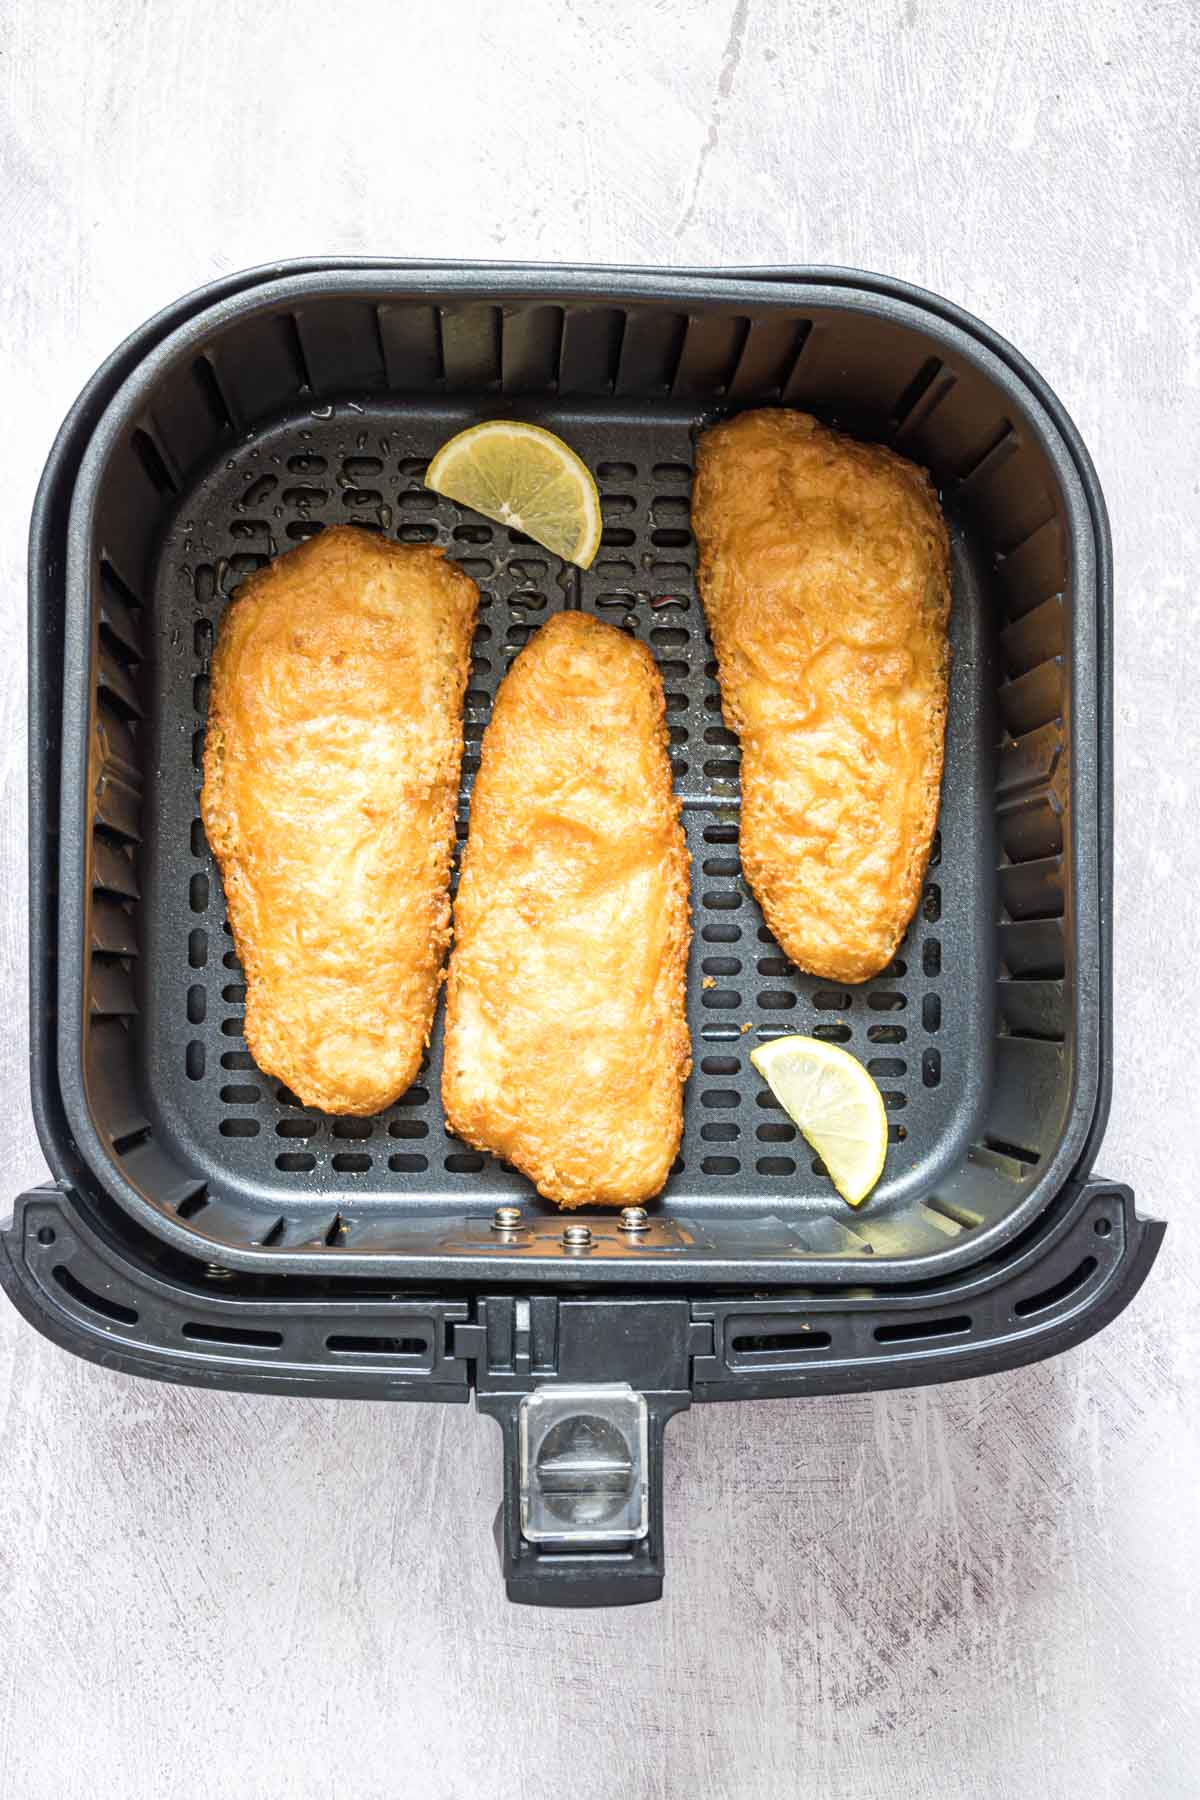 top down view showing how to reheat fried fish in air fryer